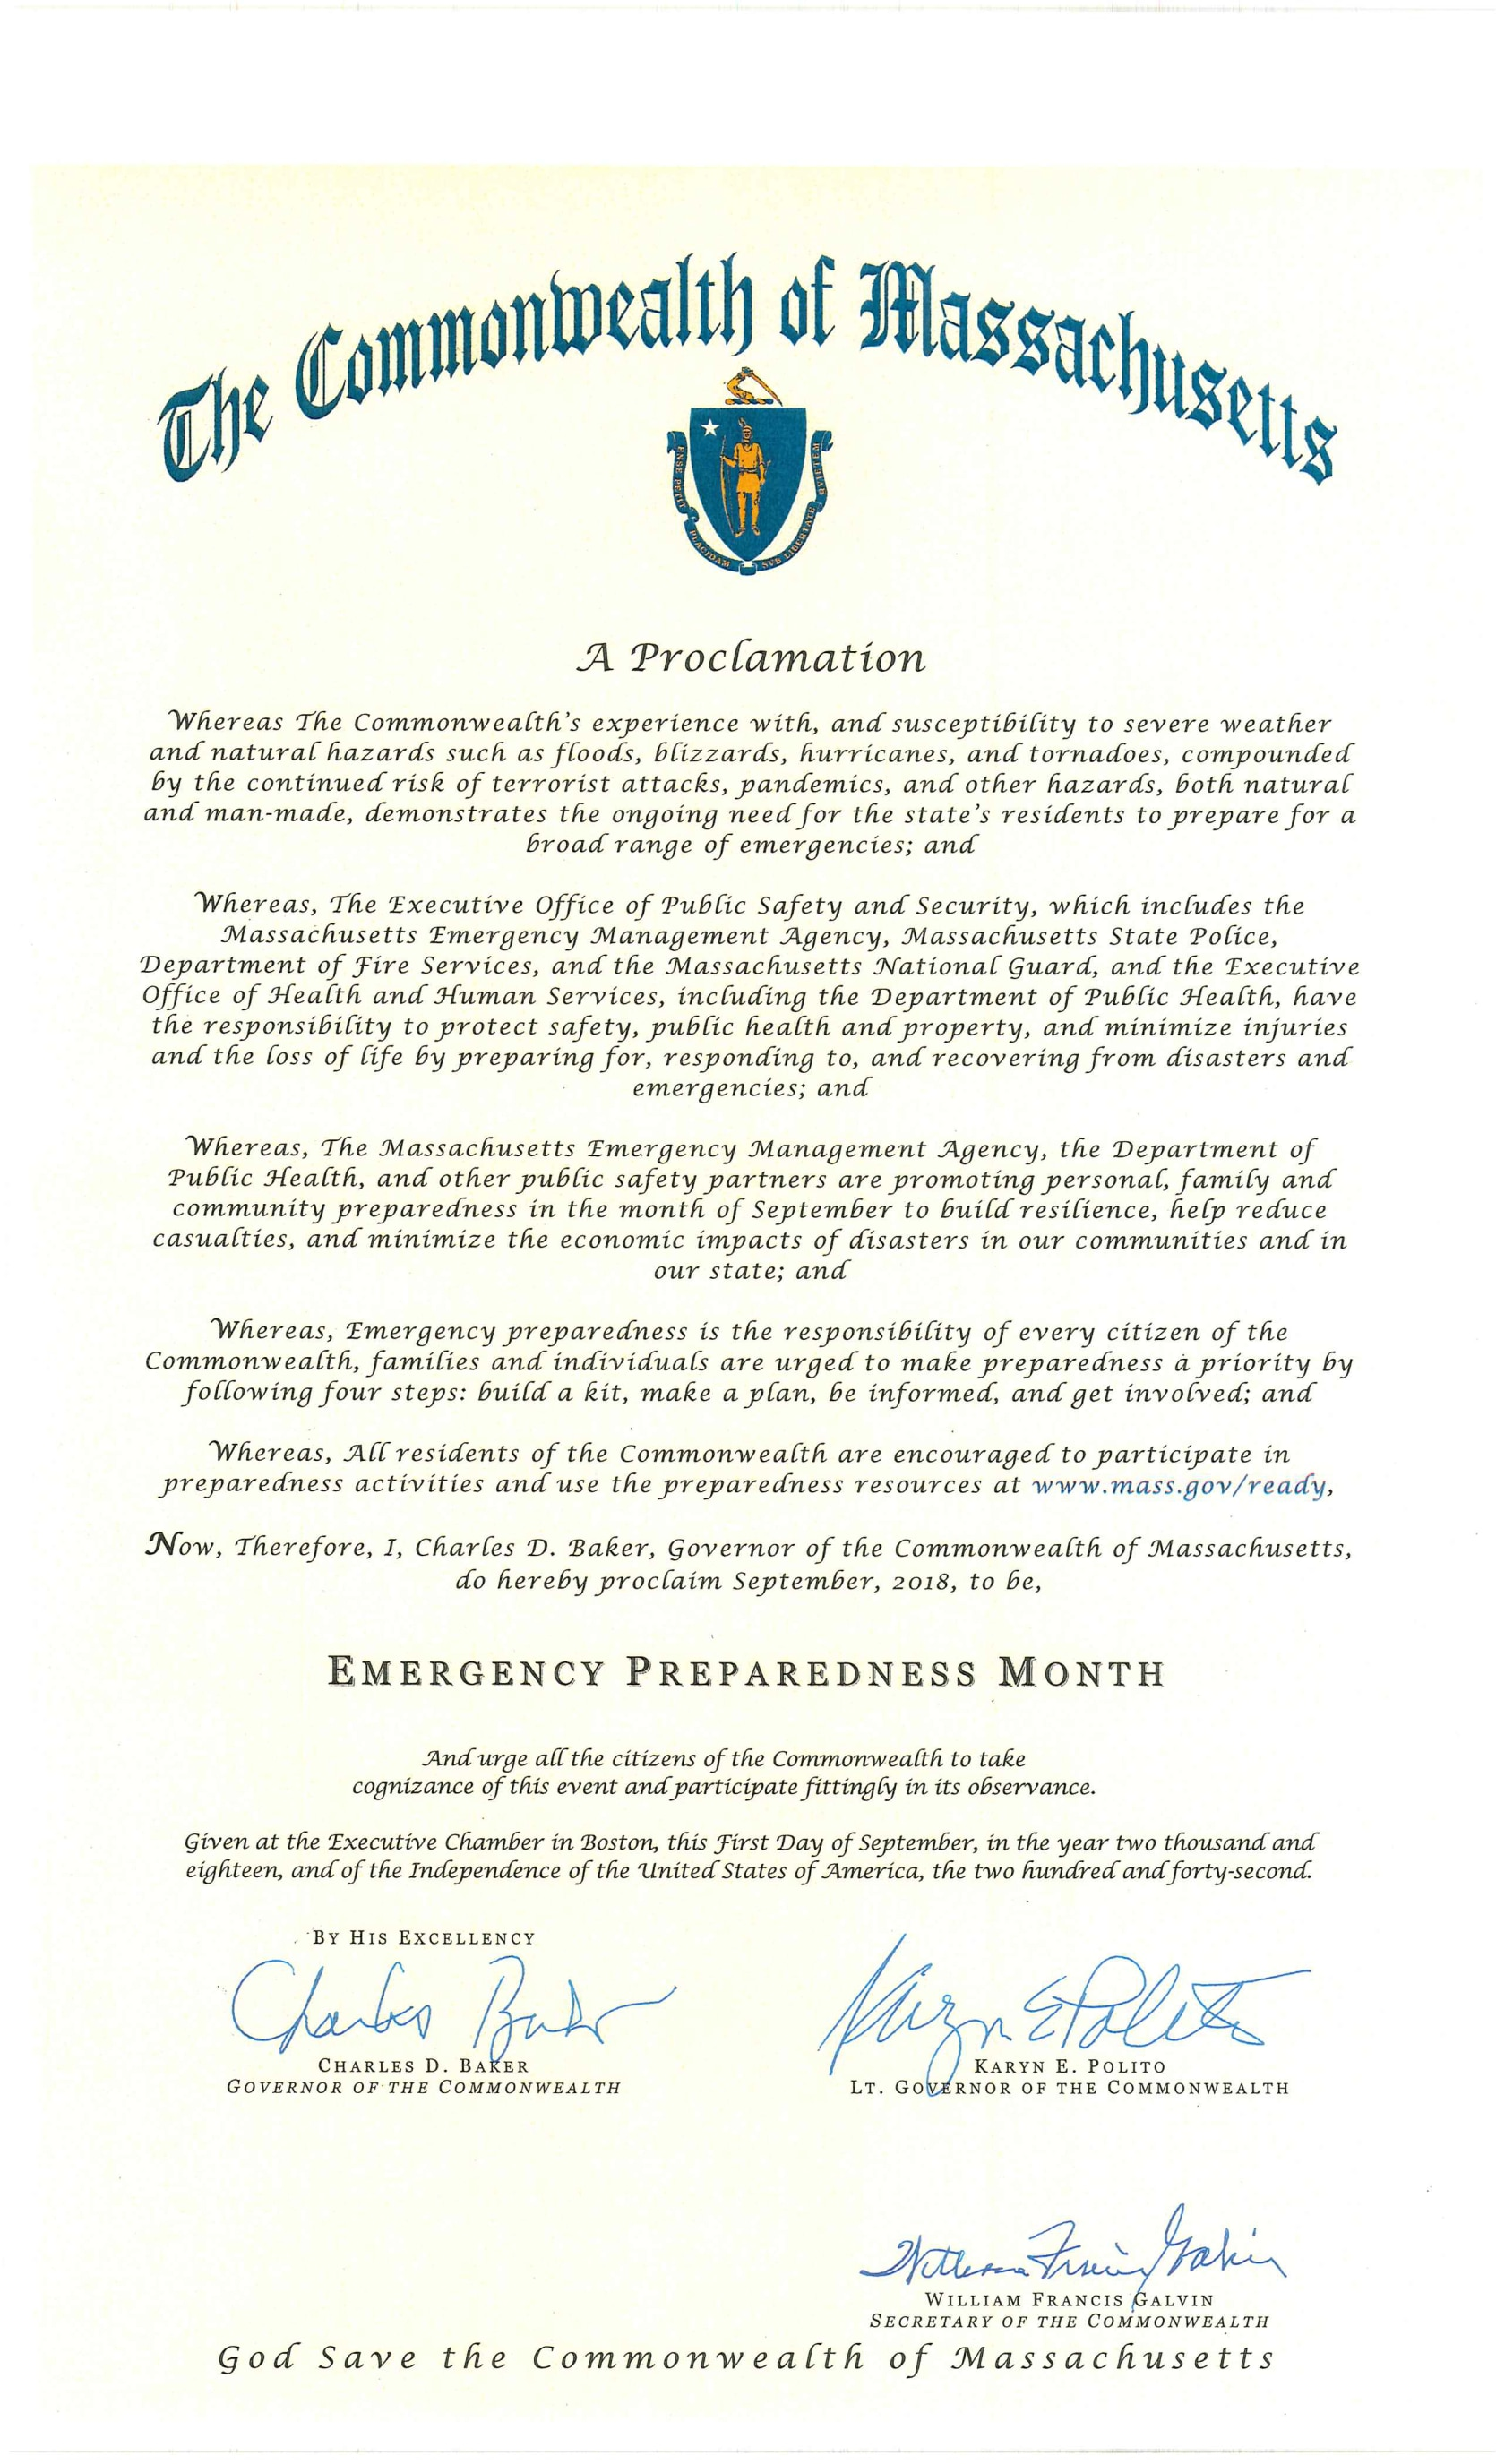 Proclamation from Governor Baker declaring September 2018 to be Emergency Preparedness Month